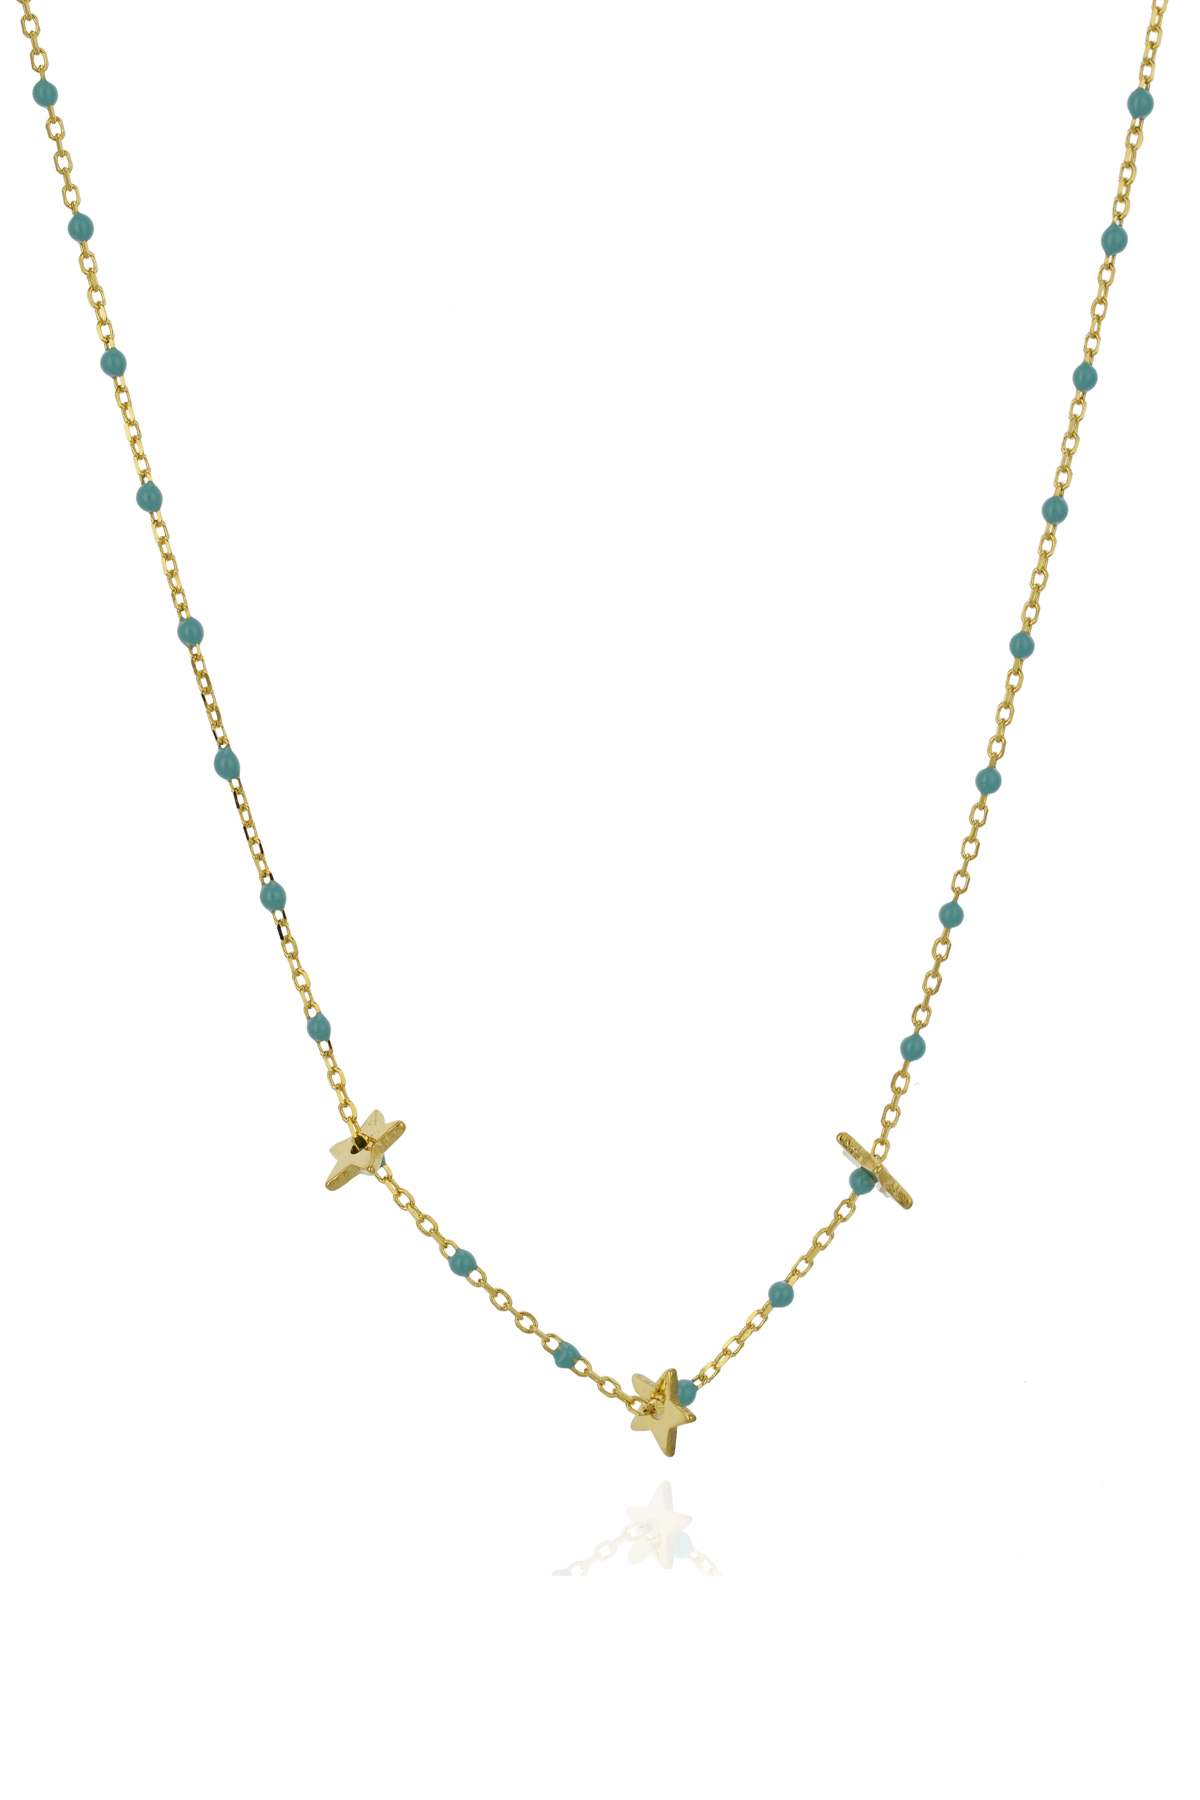 Beaded Star Charm Necklace - Gold 1